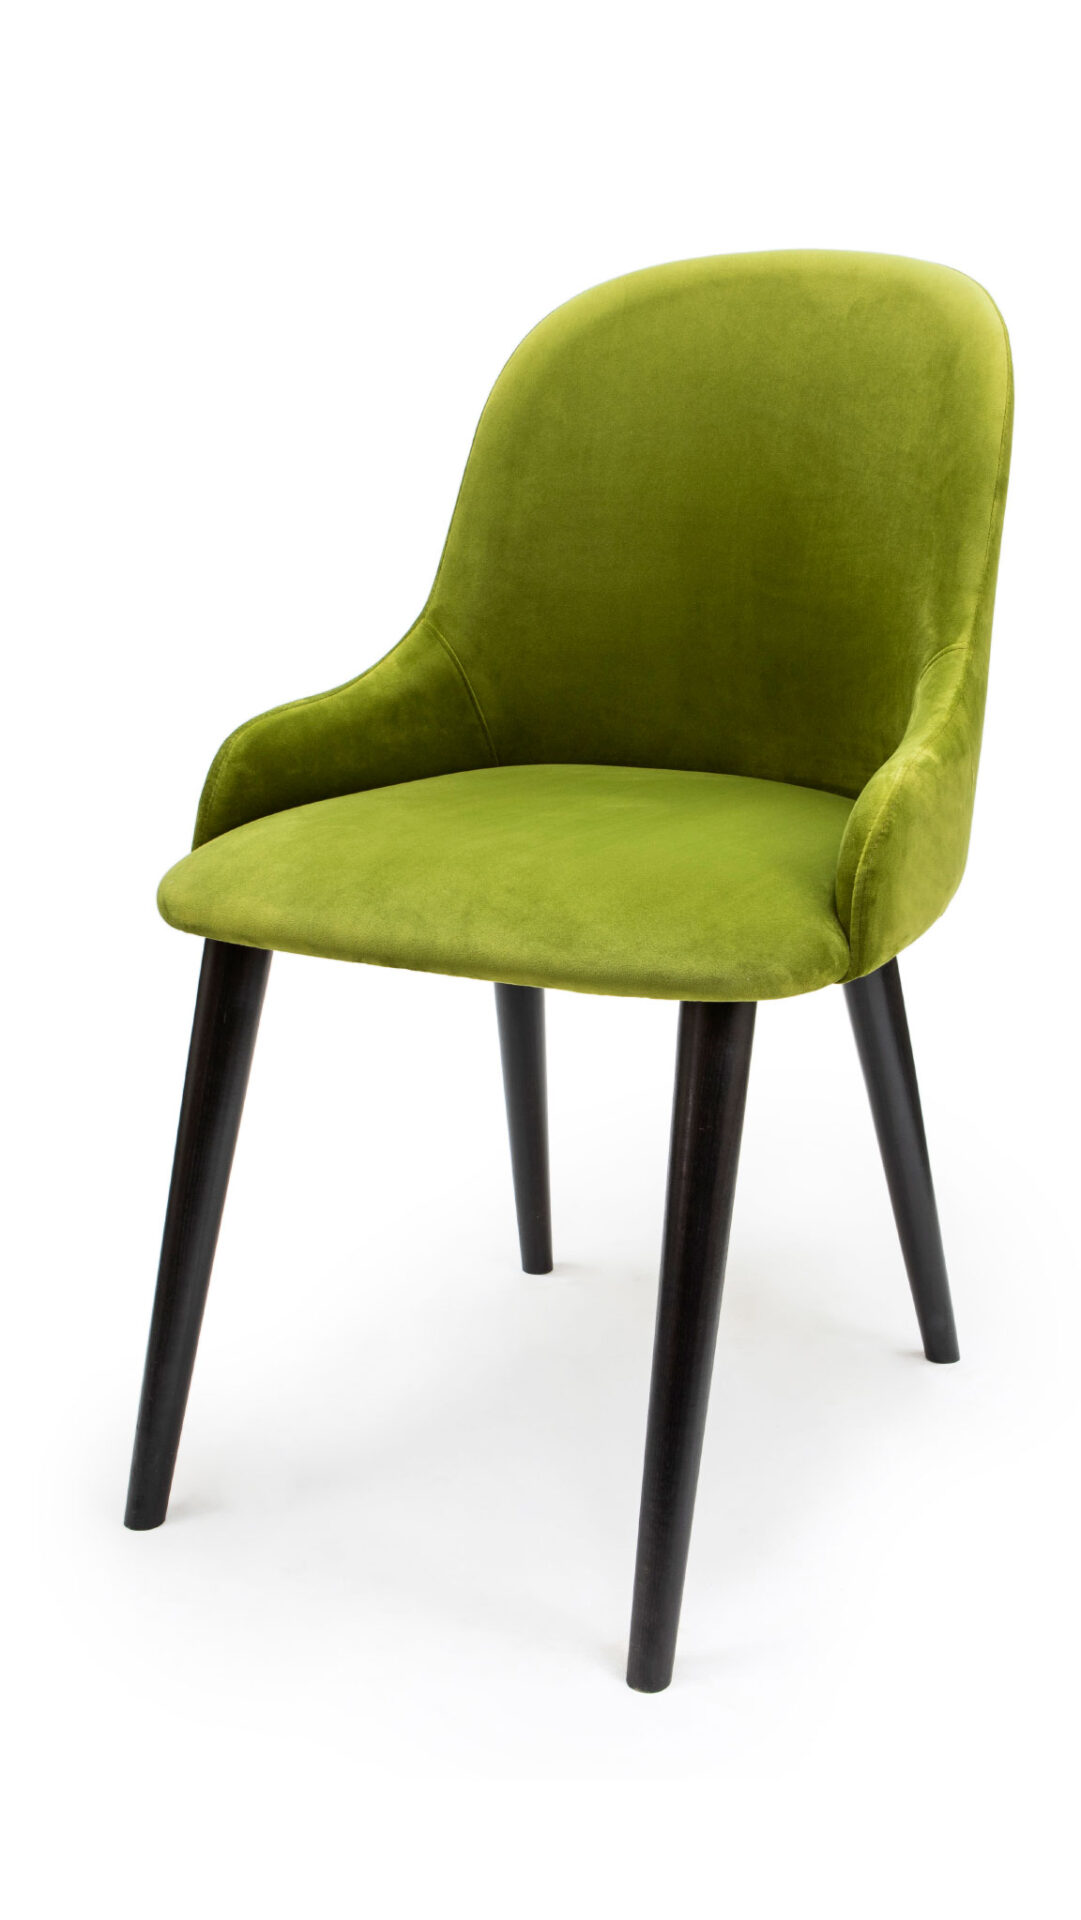 Solid wood armchair made of beech - 1393A